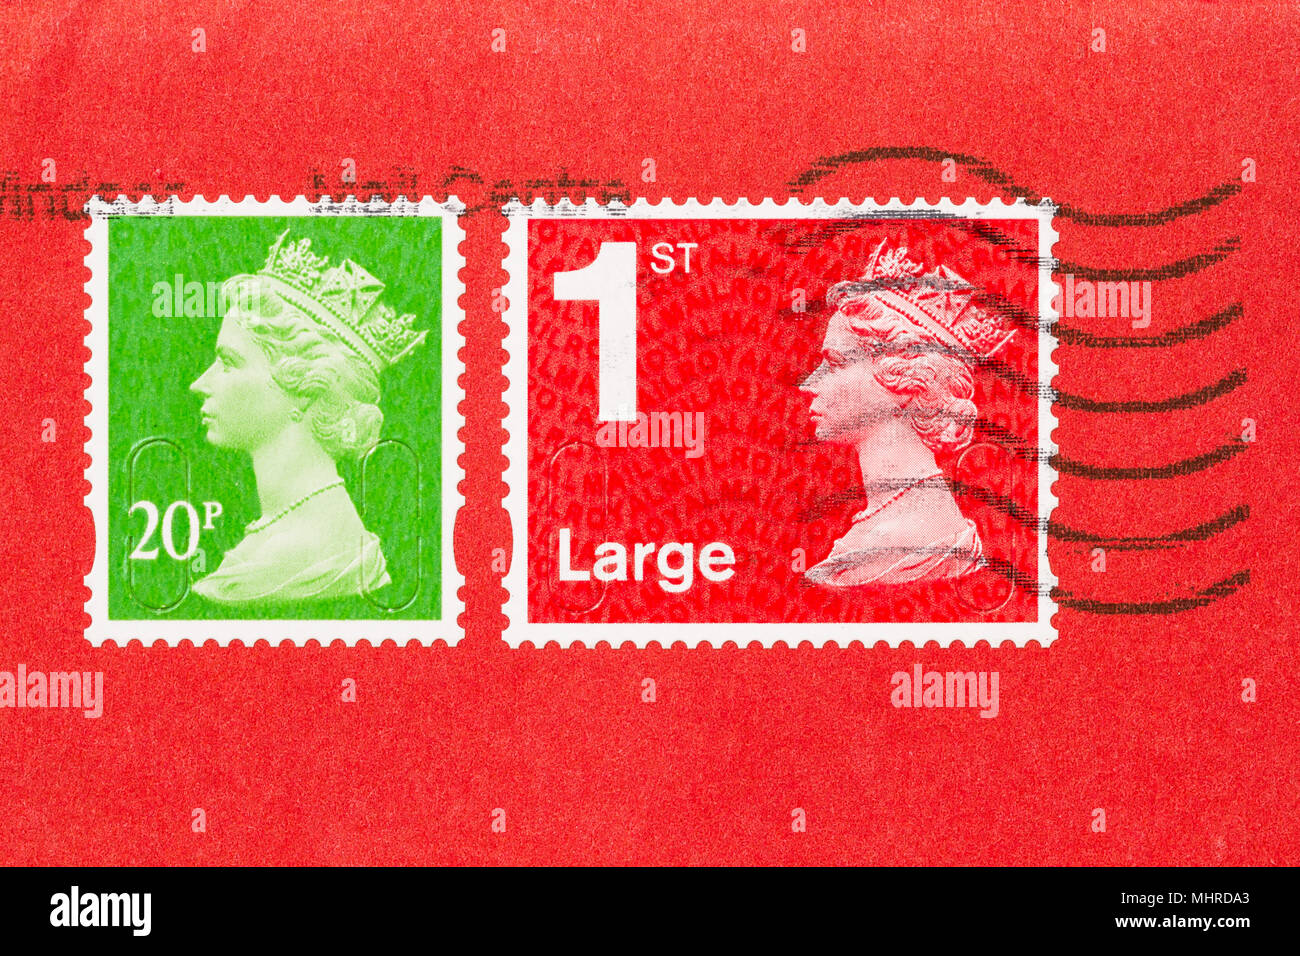 Close up of an envelope with 2 stamps, ones red, one green, of Queen Elisabeth II. UK postage stamp on red paper. - Stock Image